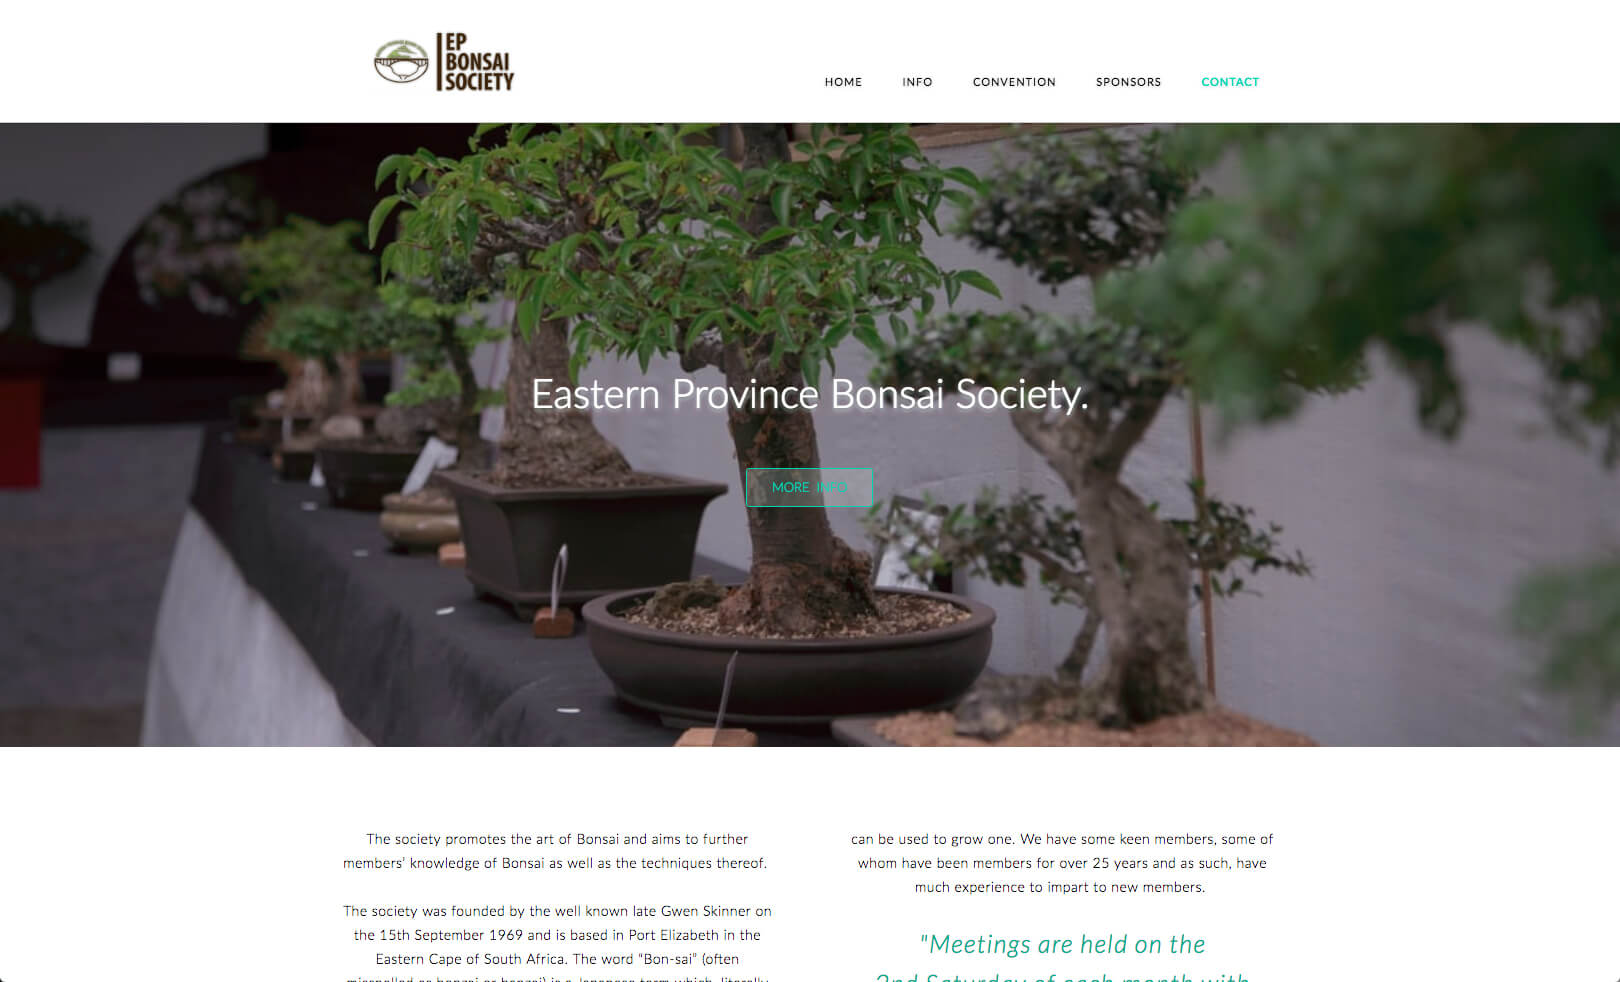 Website layout and content design plus Web Photography for a Bonsai Society based in Port Elizabeth, South Africa.